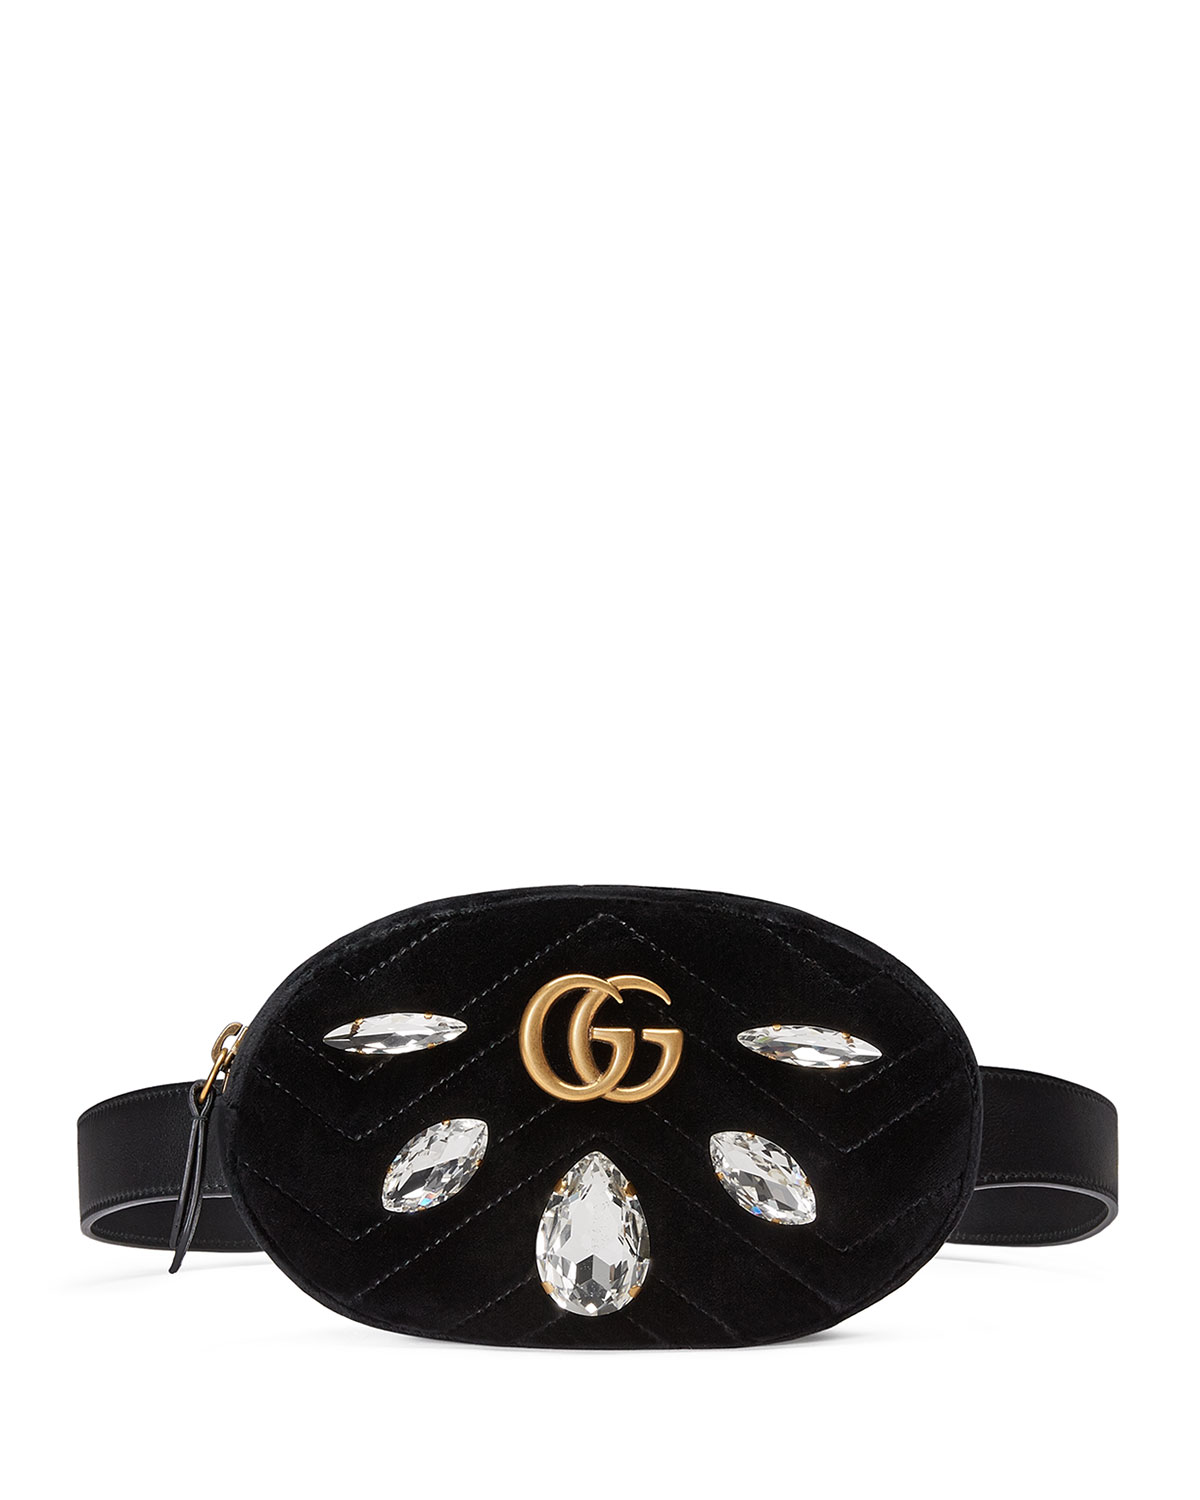 362731a4e0b0 Gucci GG Marmont Small Quilted Velvet Belt Bag | Neiman Marcus